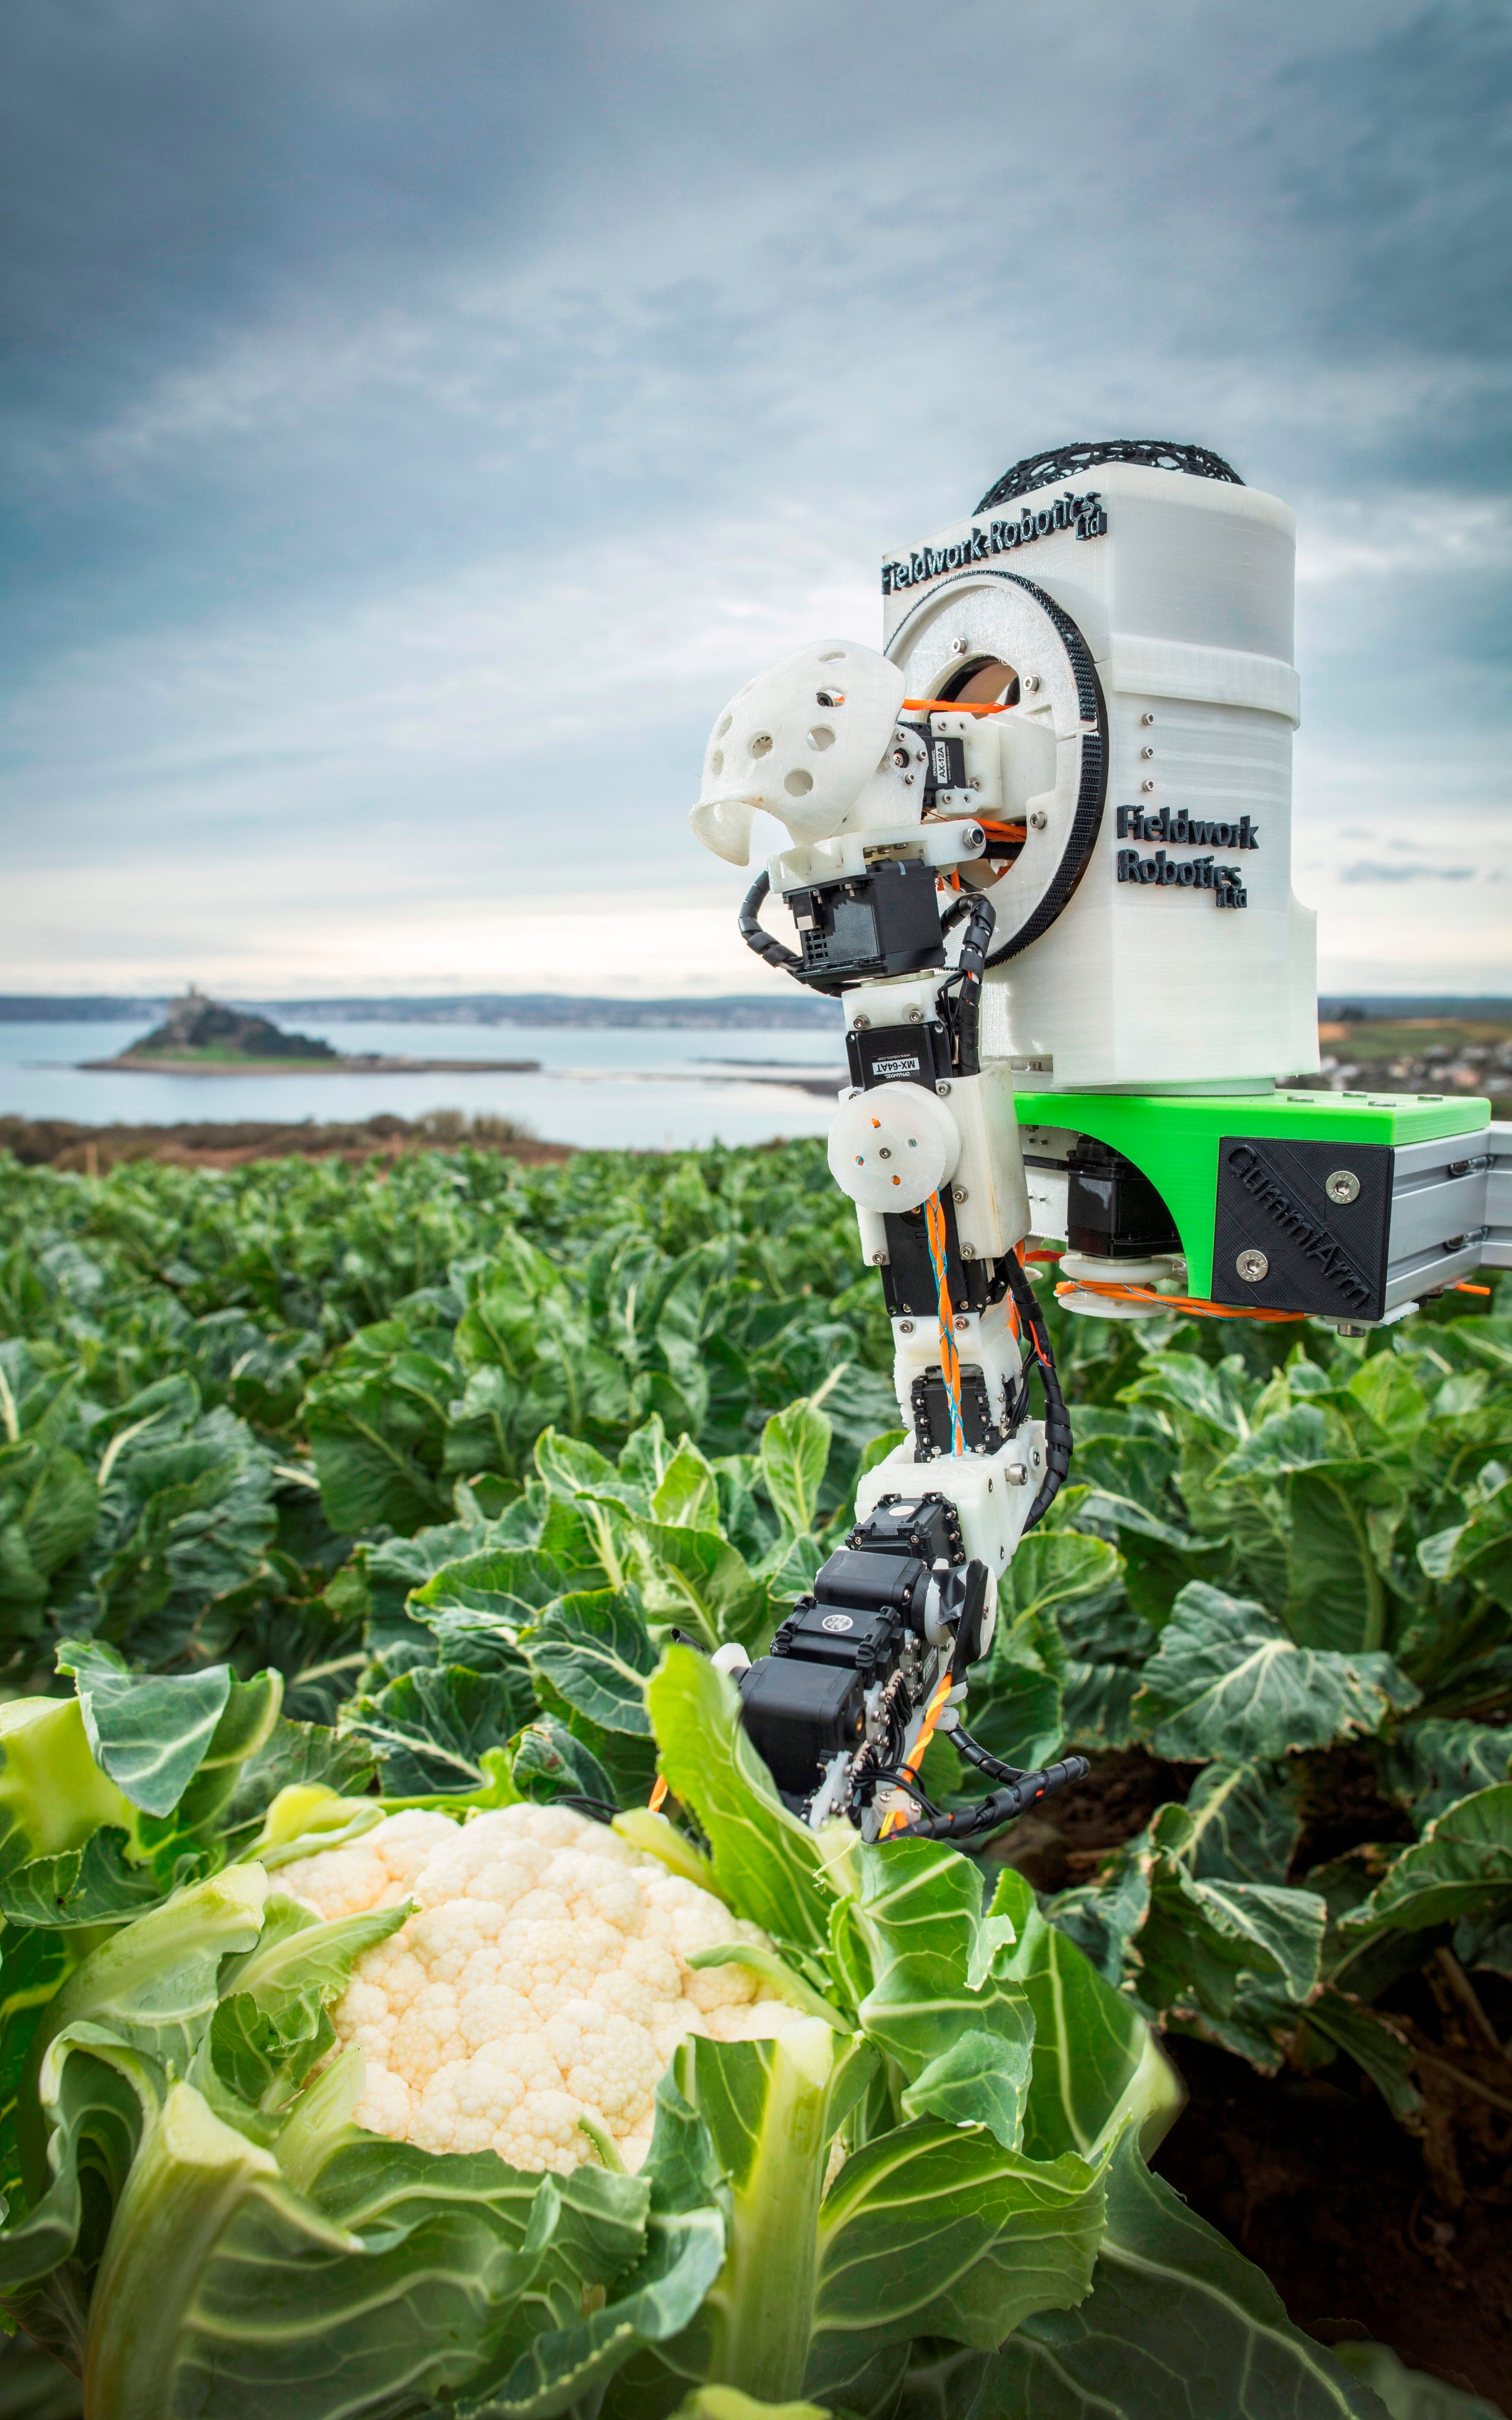 Robots could help farmers cope with shortages of manual labour